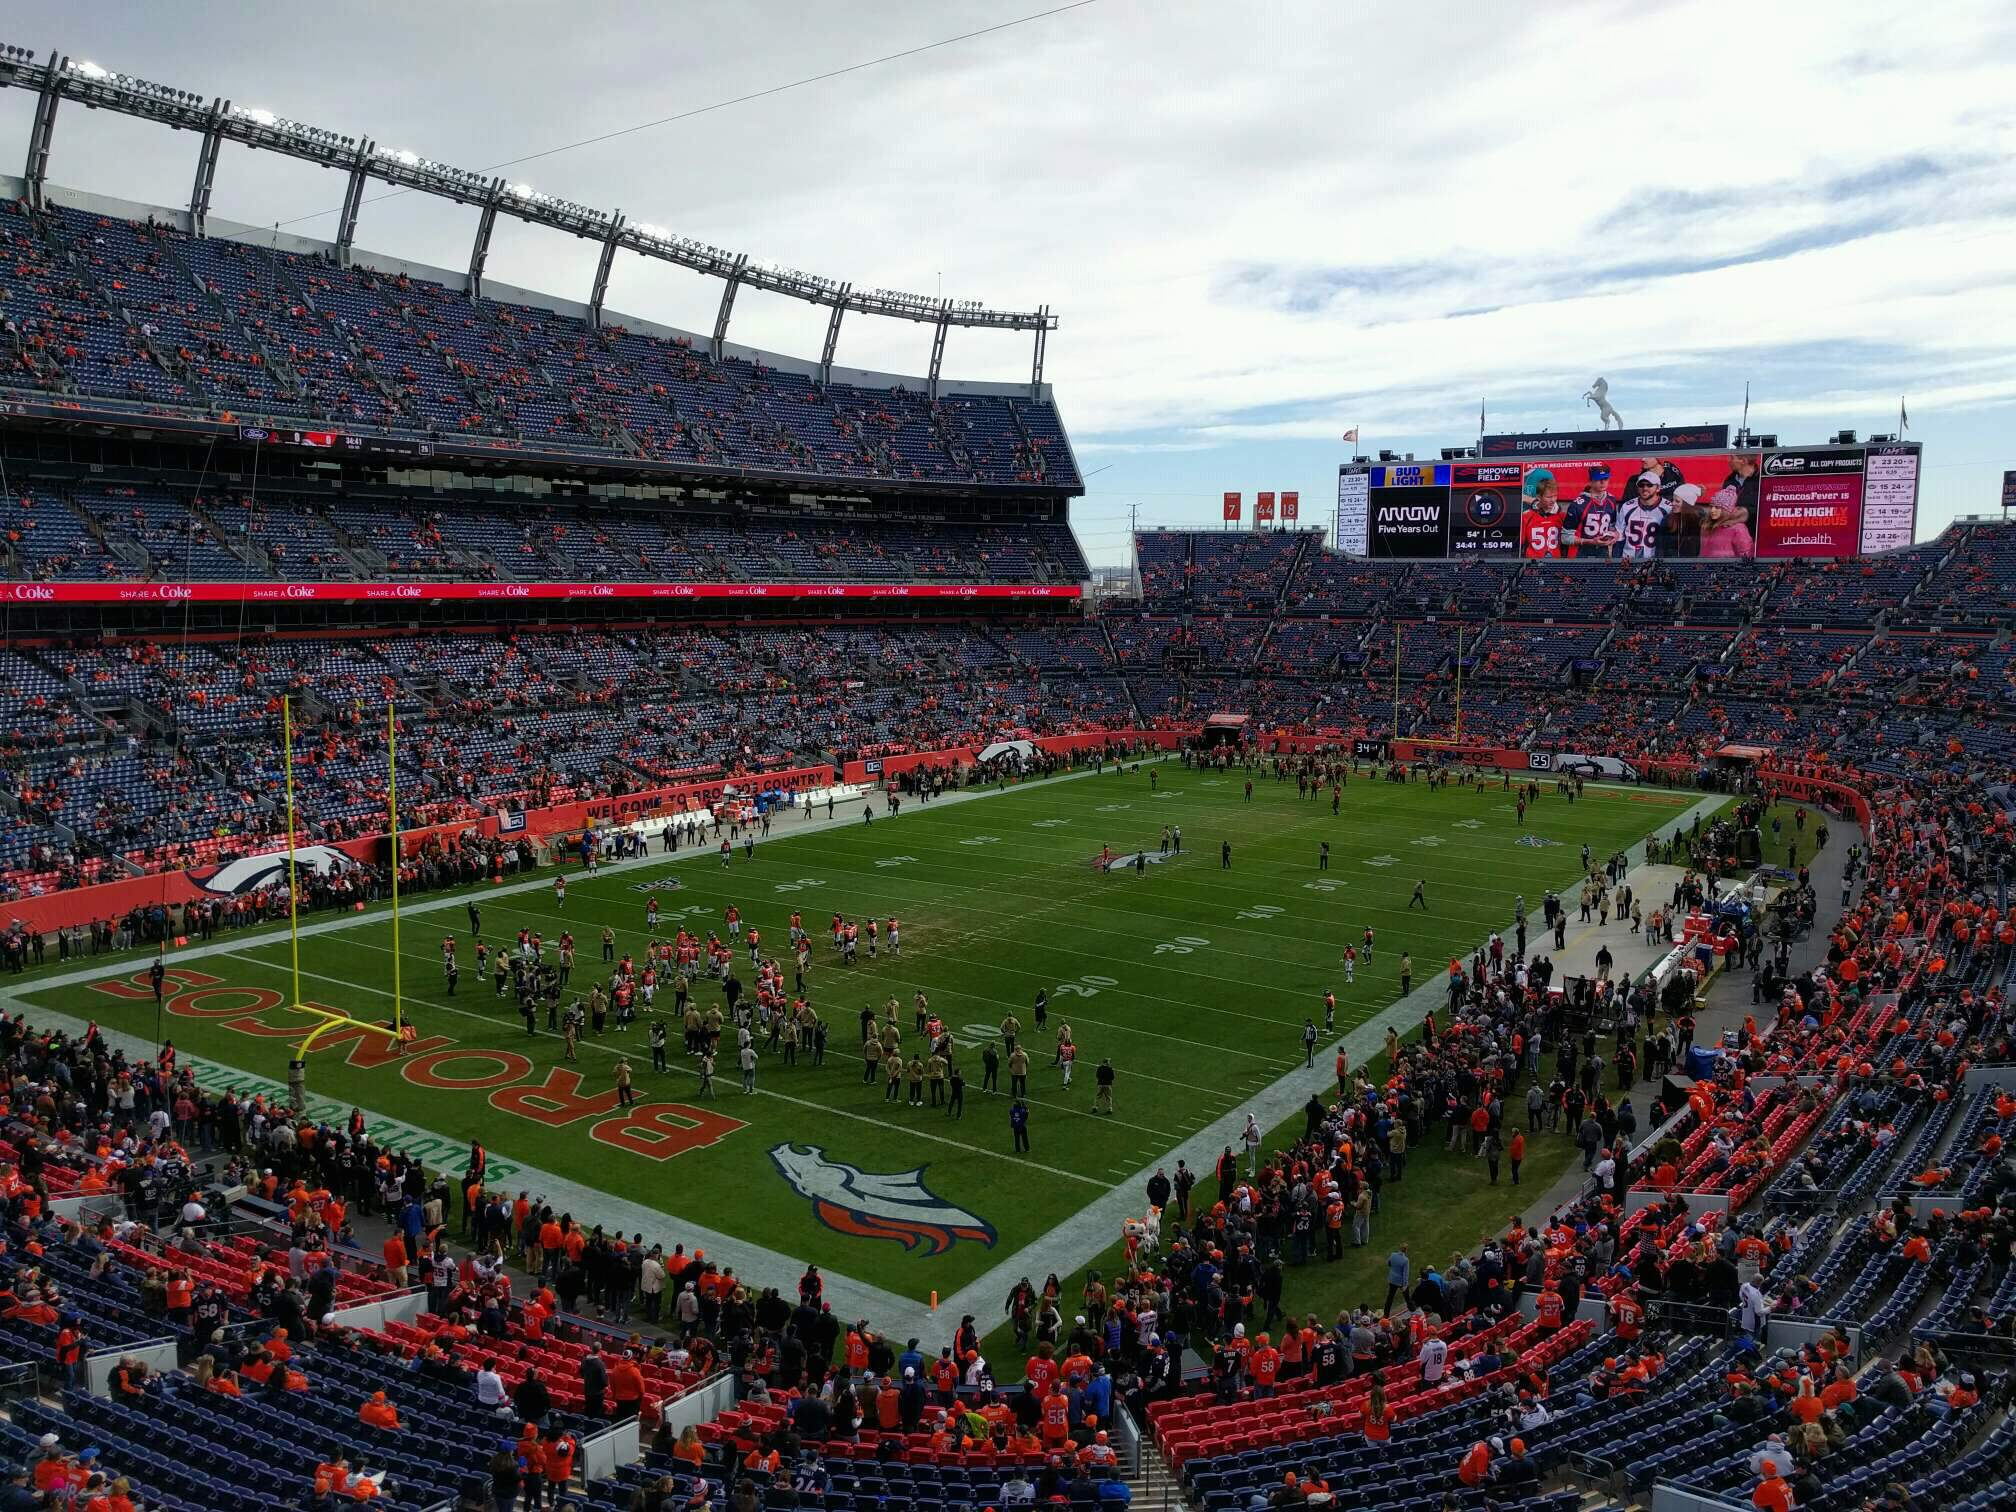 Empower Field at Mile High Stadium Section 319 Row 1 Seat 6